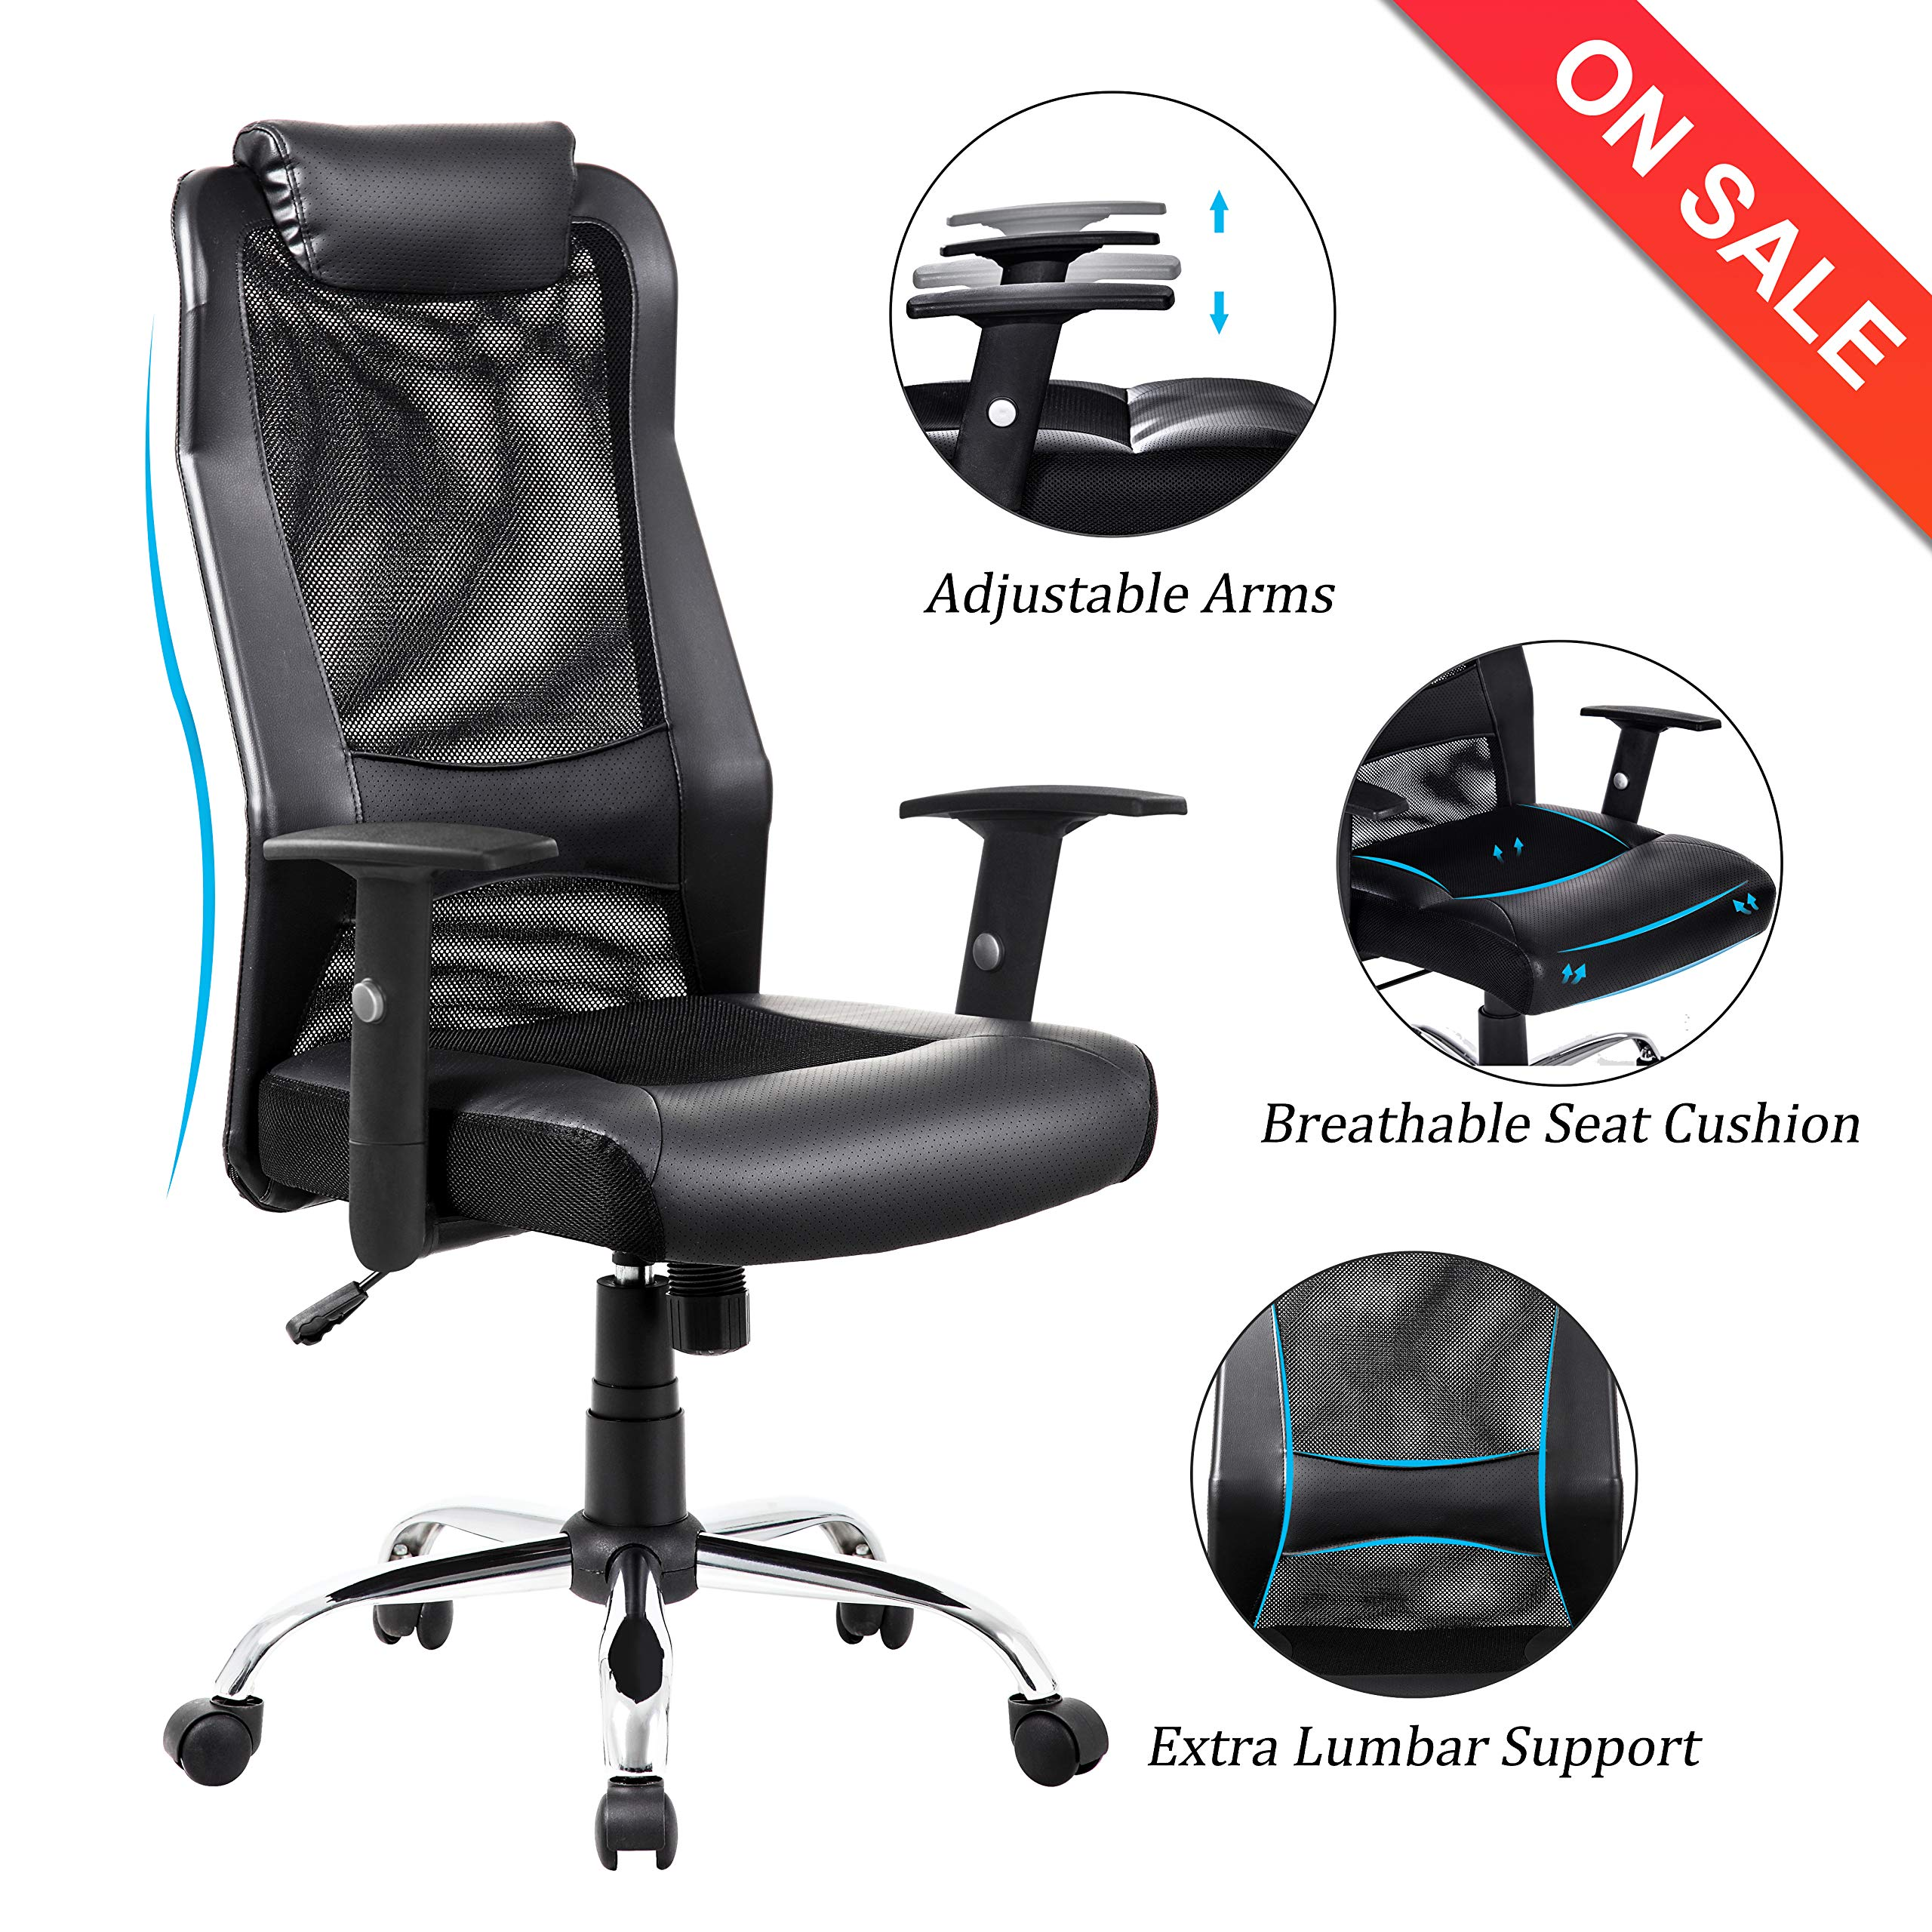 VANBOW Extra High Back Mesh Office Chair - Adjustable Arms Ergonomic Computer Desk Task Chair with Padded Leather Headrest and Lumbar Support, Black